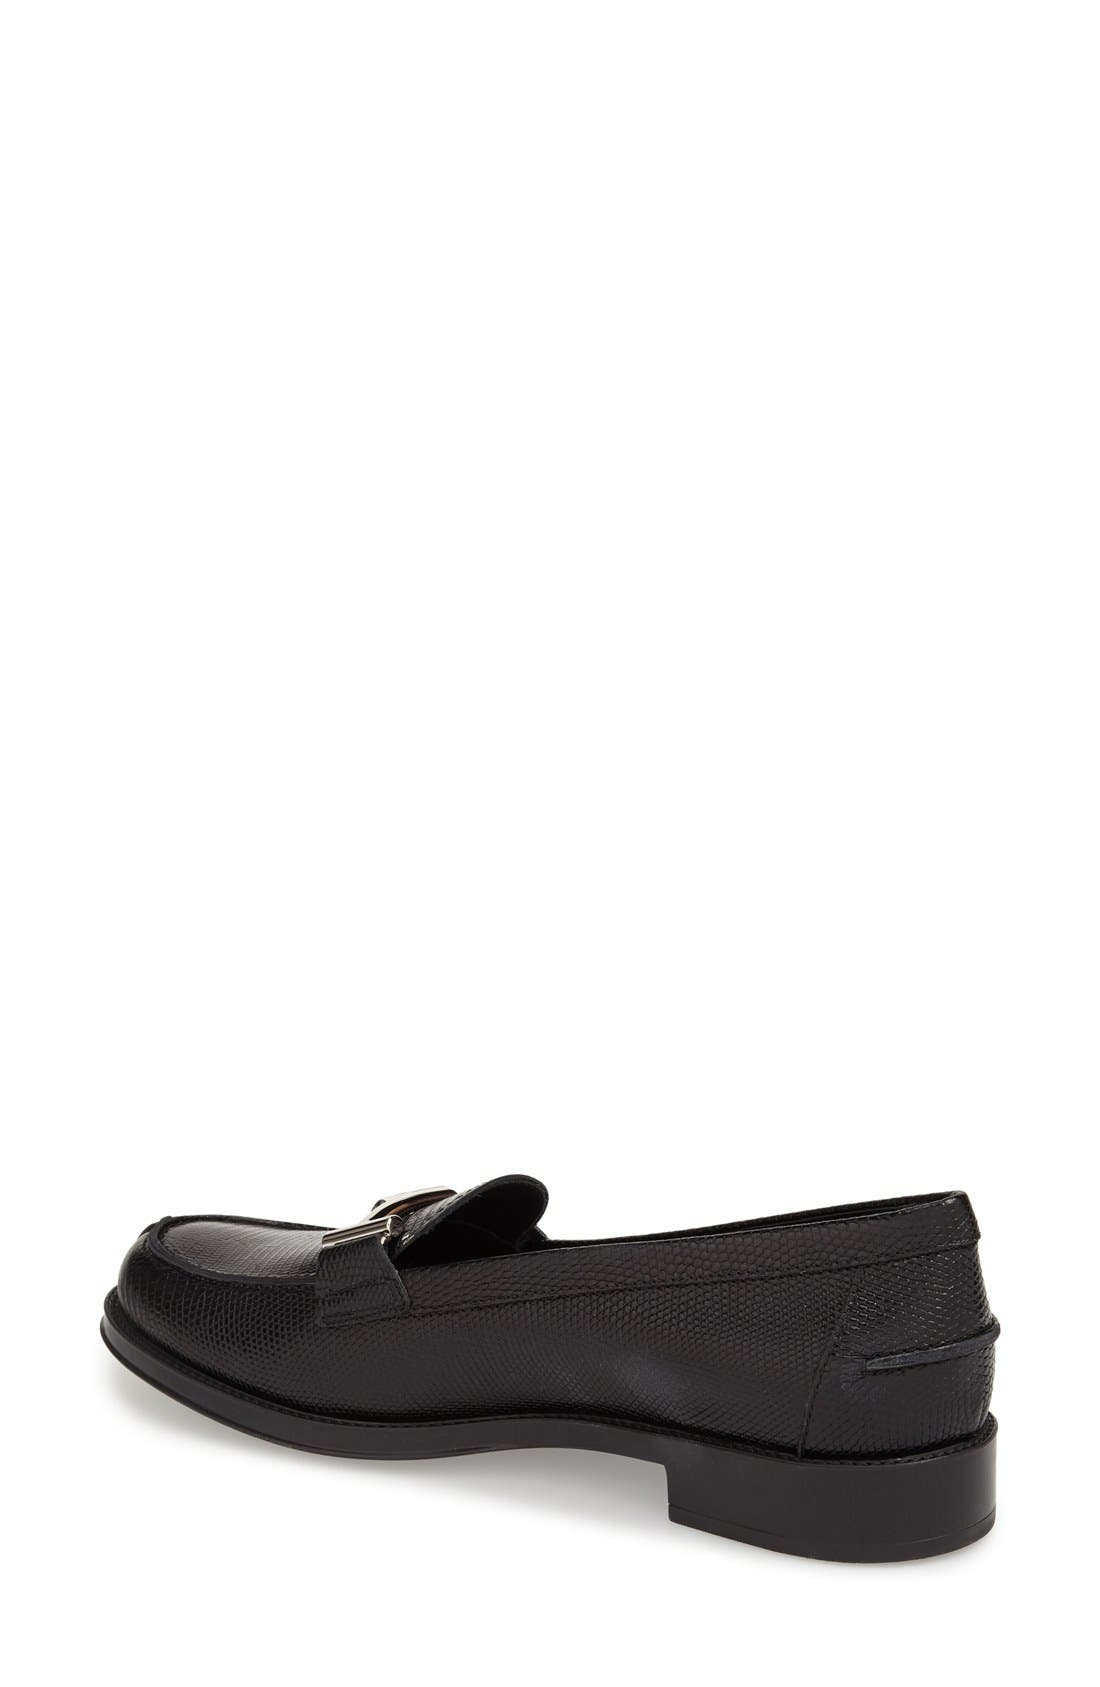 'Double T' Loafer,                             Alternate thumbnail 2, color,                             001